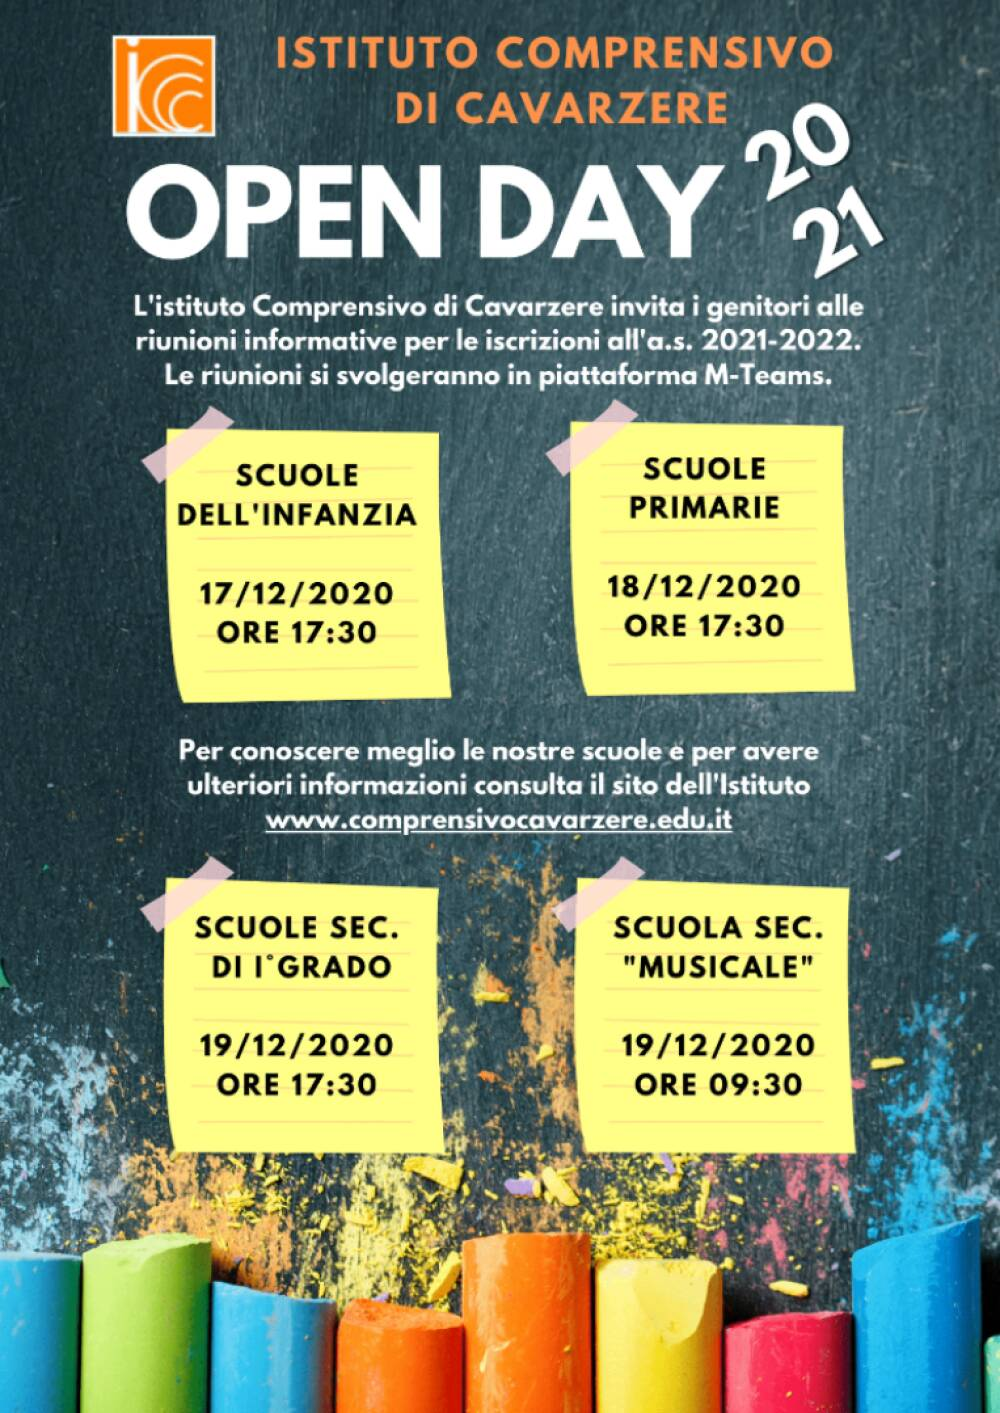 openday_20-21